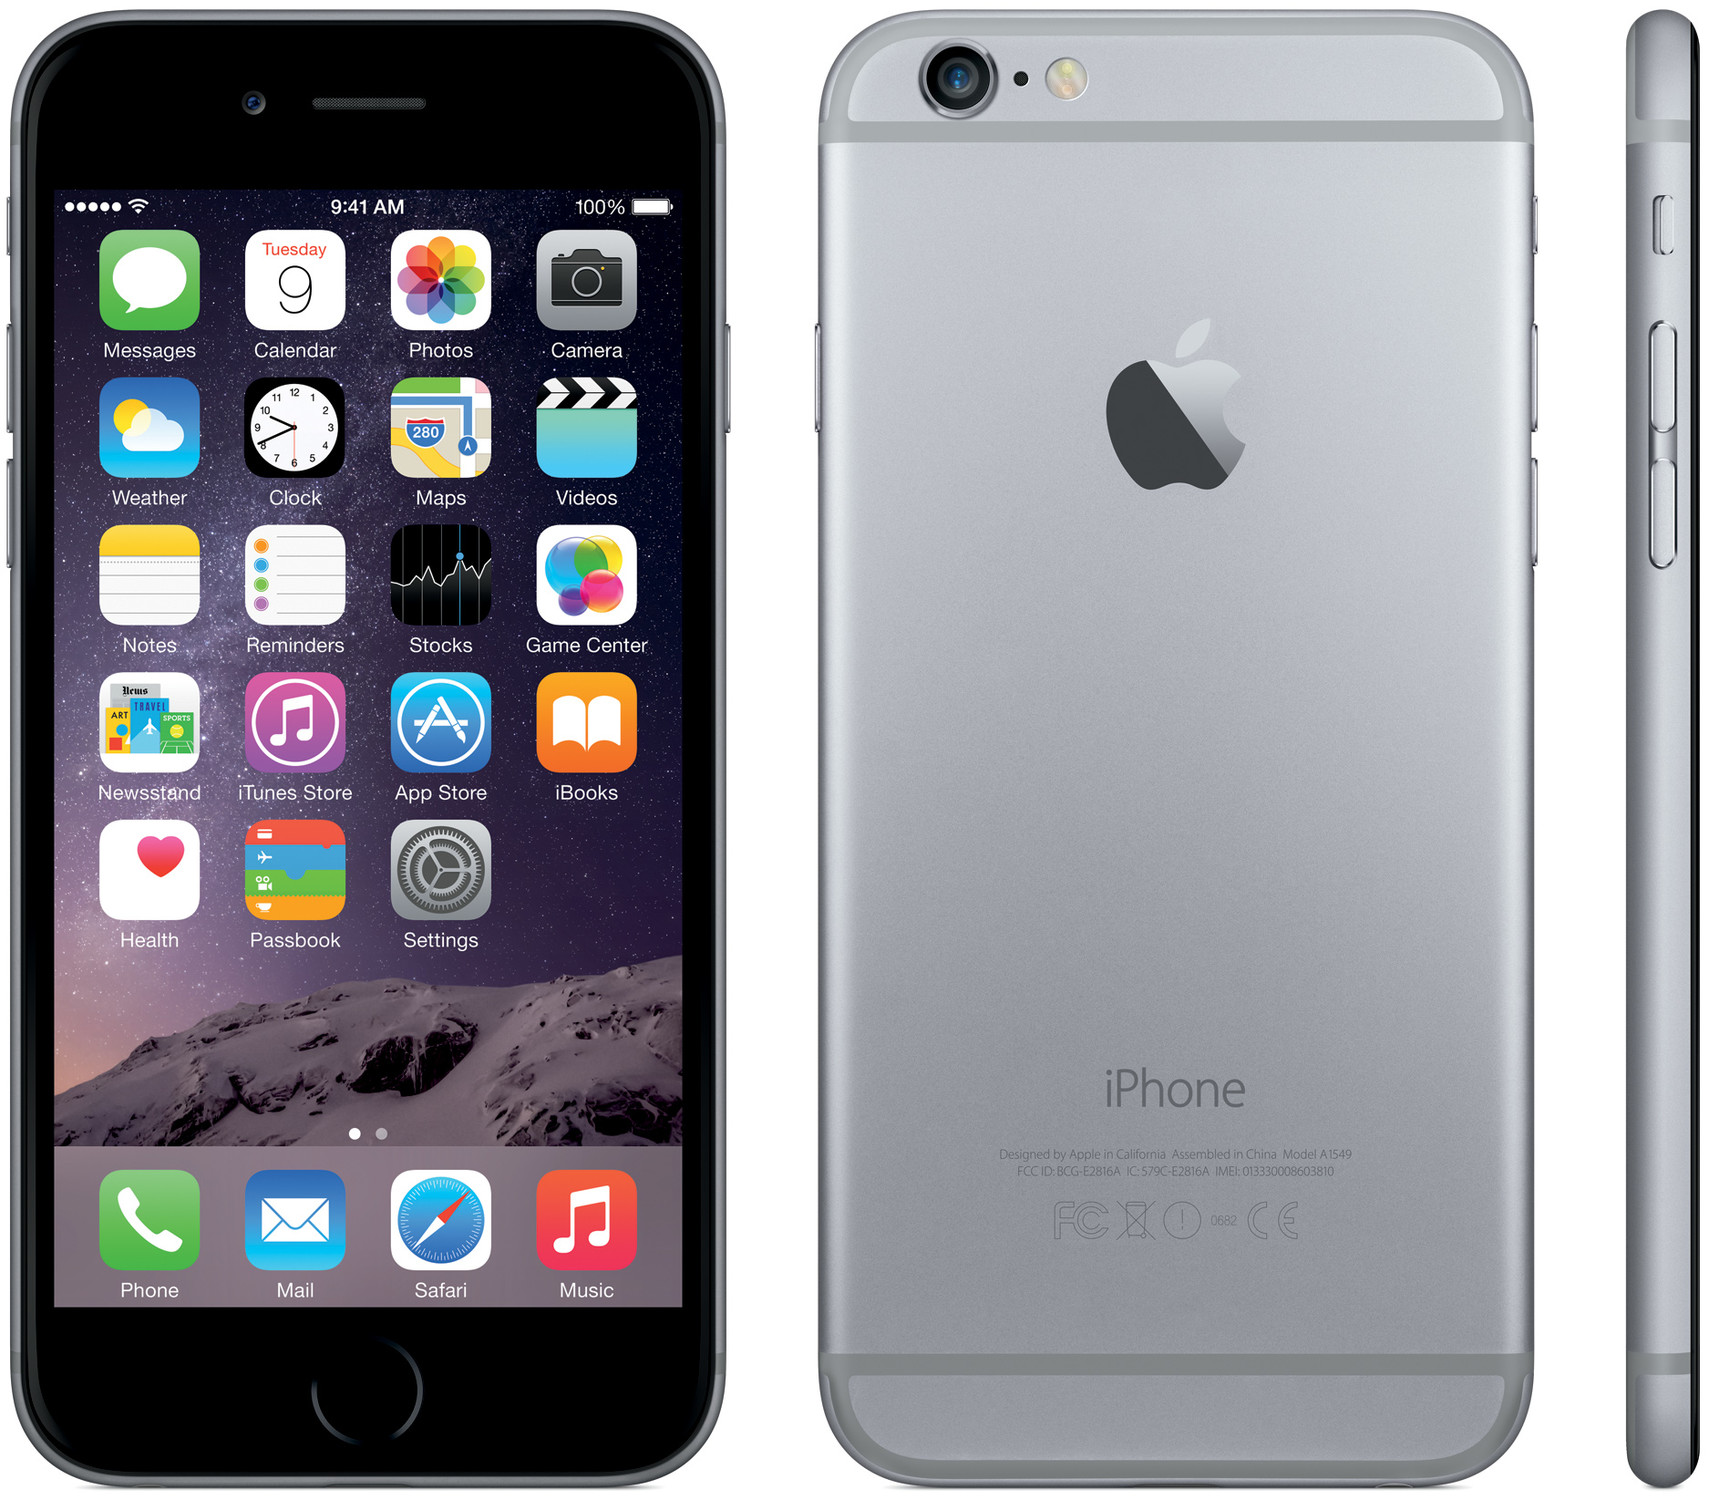 apple iphone 6 plus a1522 gsm 16gb specs and price. Black Bedroom Furniture Sets. Home Design Ideas